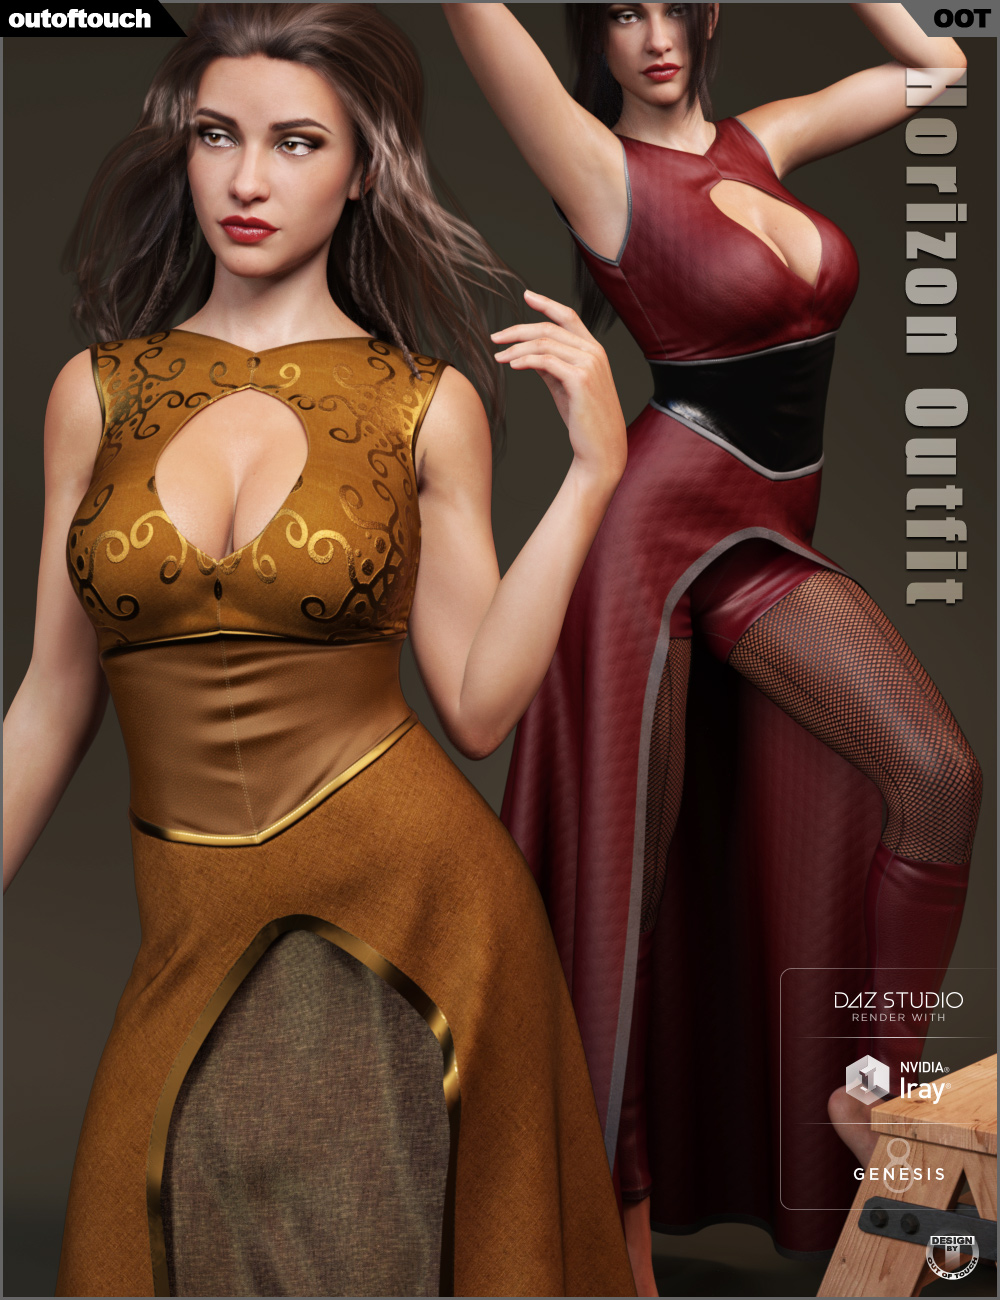 dForce Horizon Outfit for Genesis 8 Female(s) by: outoftouch, 3D Models by Daz 3D